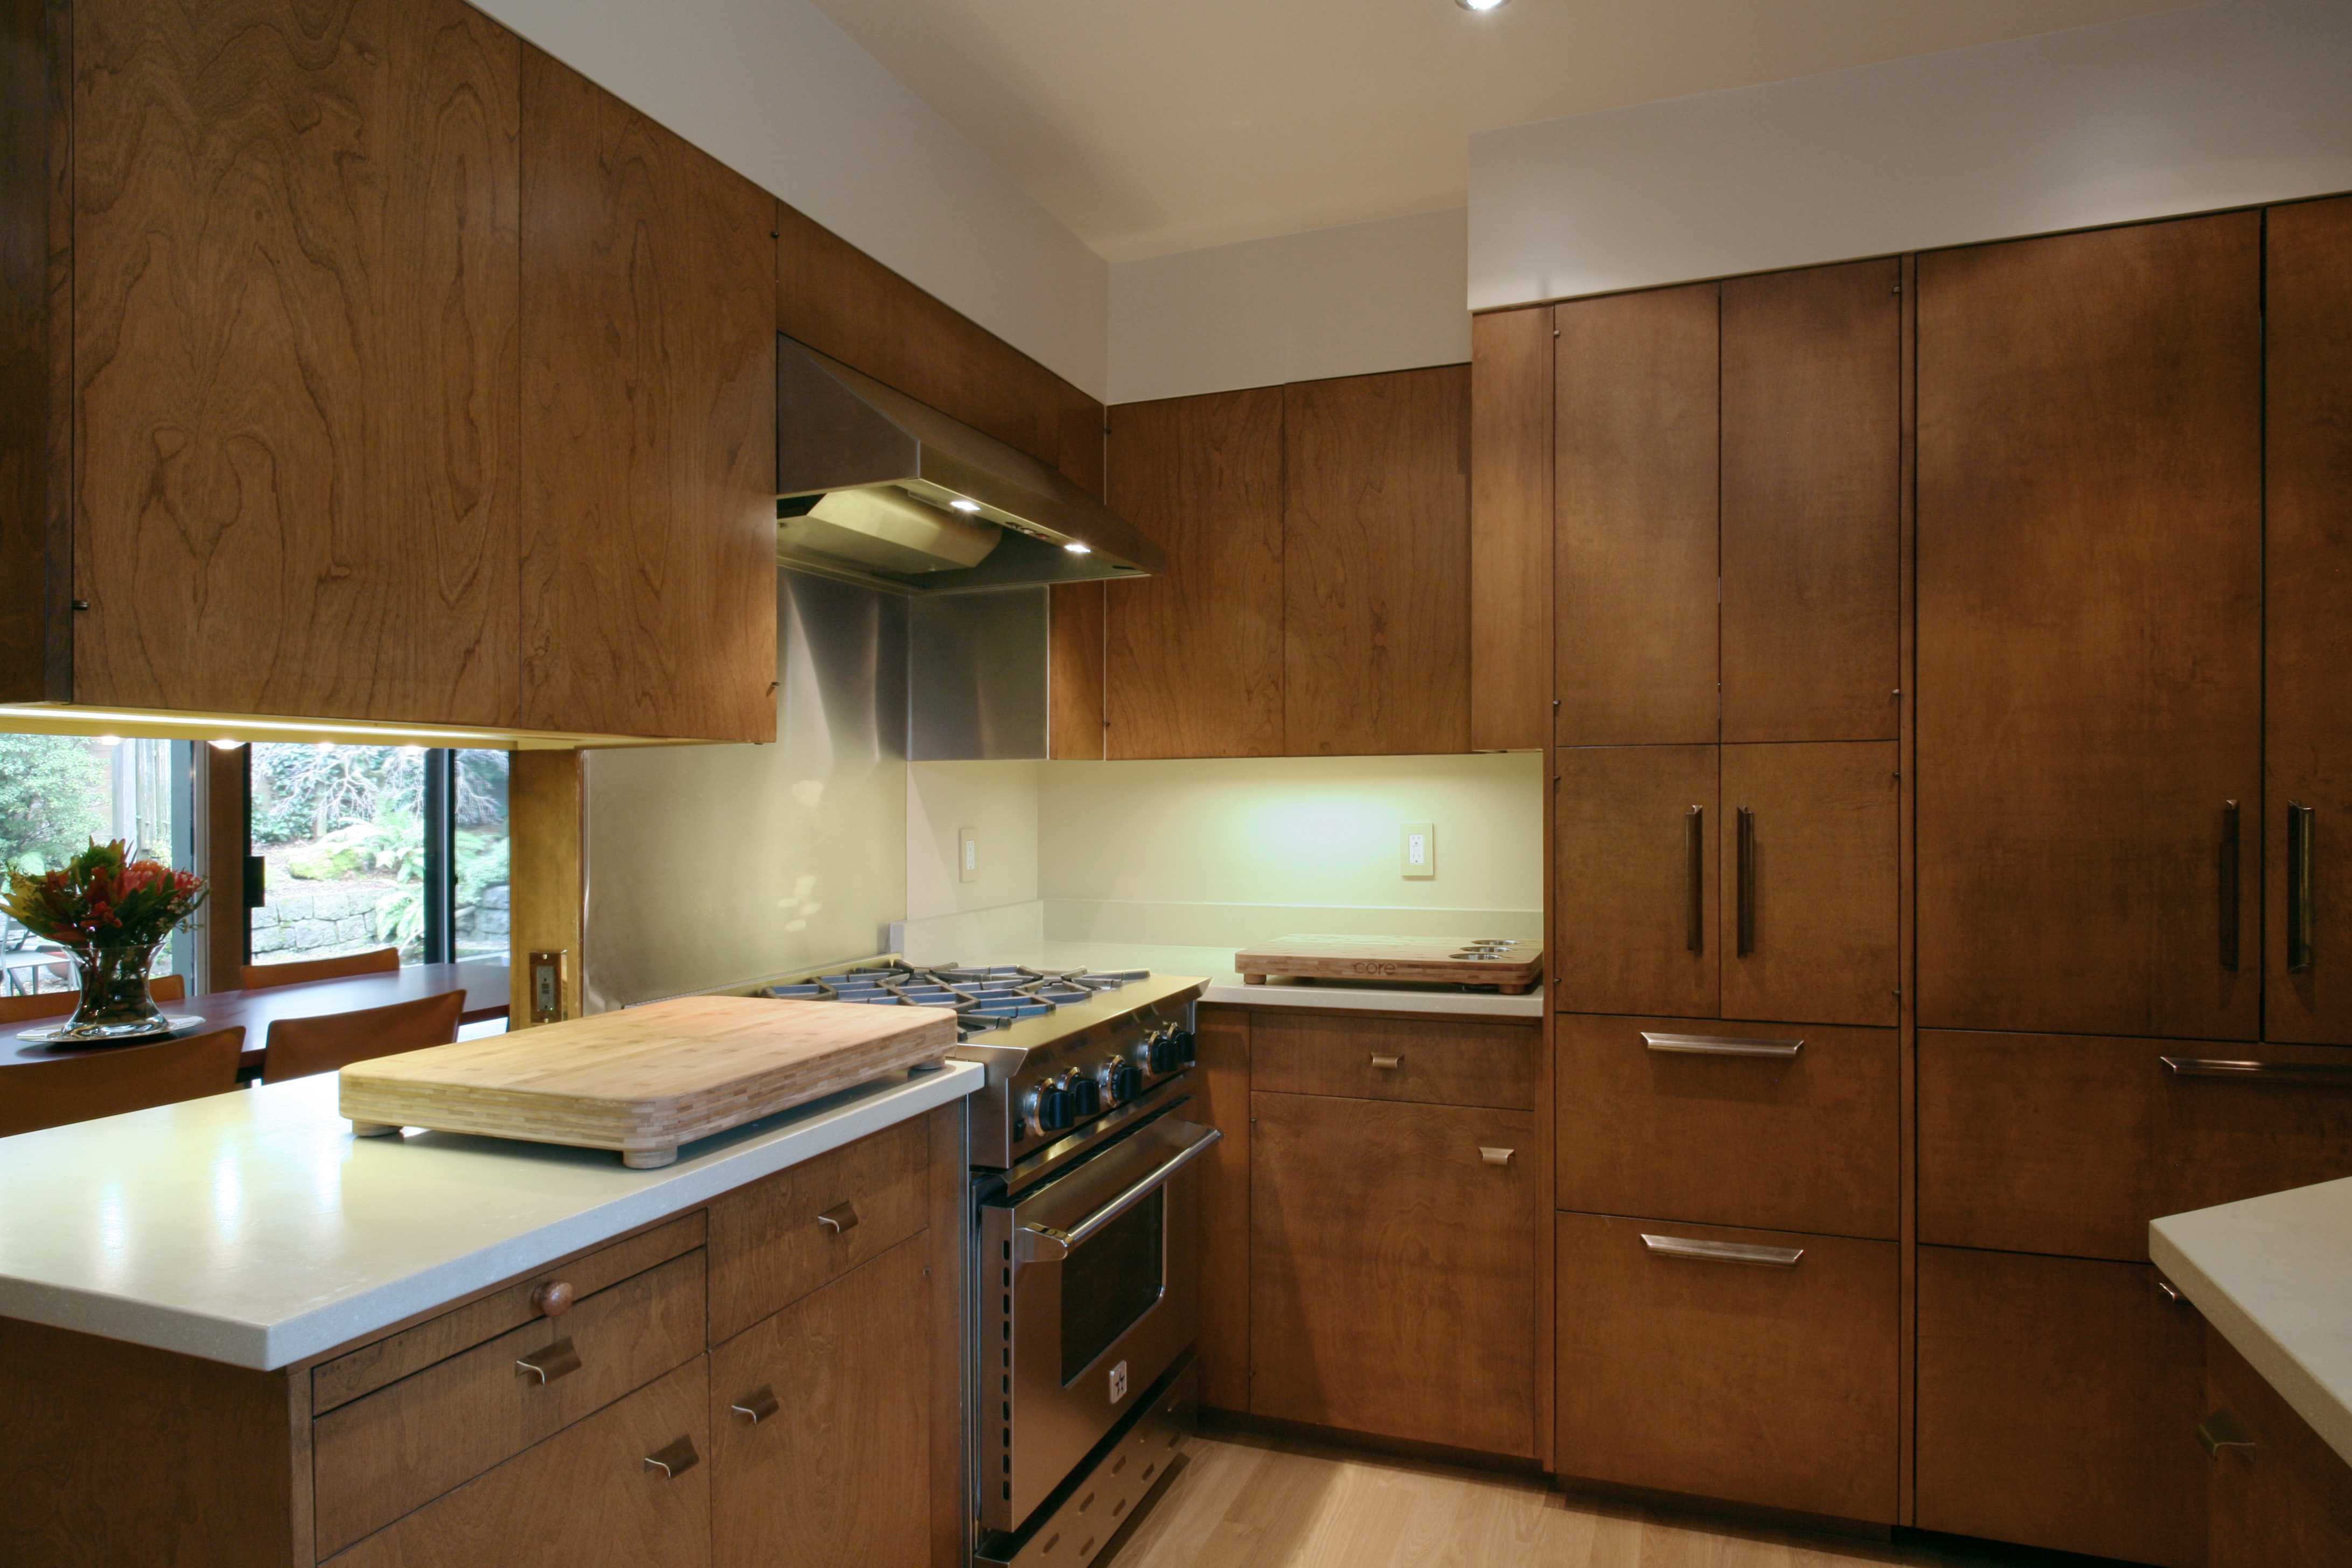 Period Kitchens The 50s And 60s Laminate Kitchen Cabinets Jacobson Kitchen A  1 P .